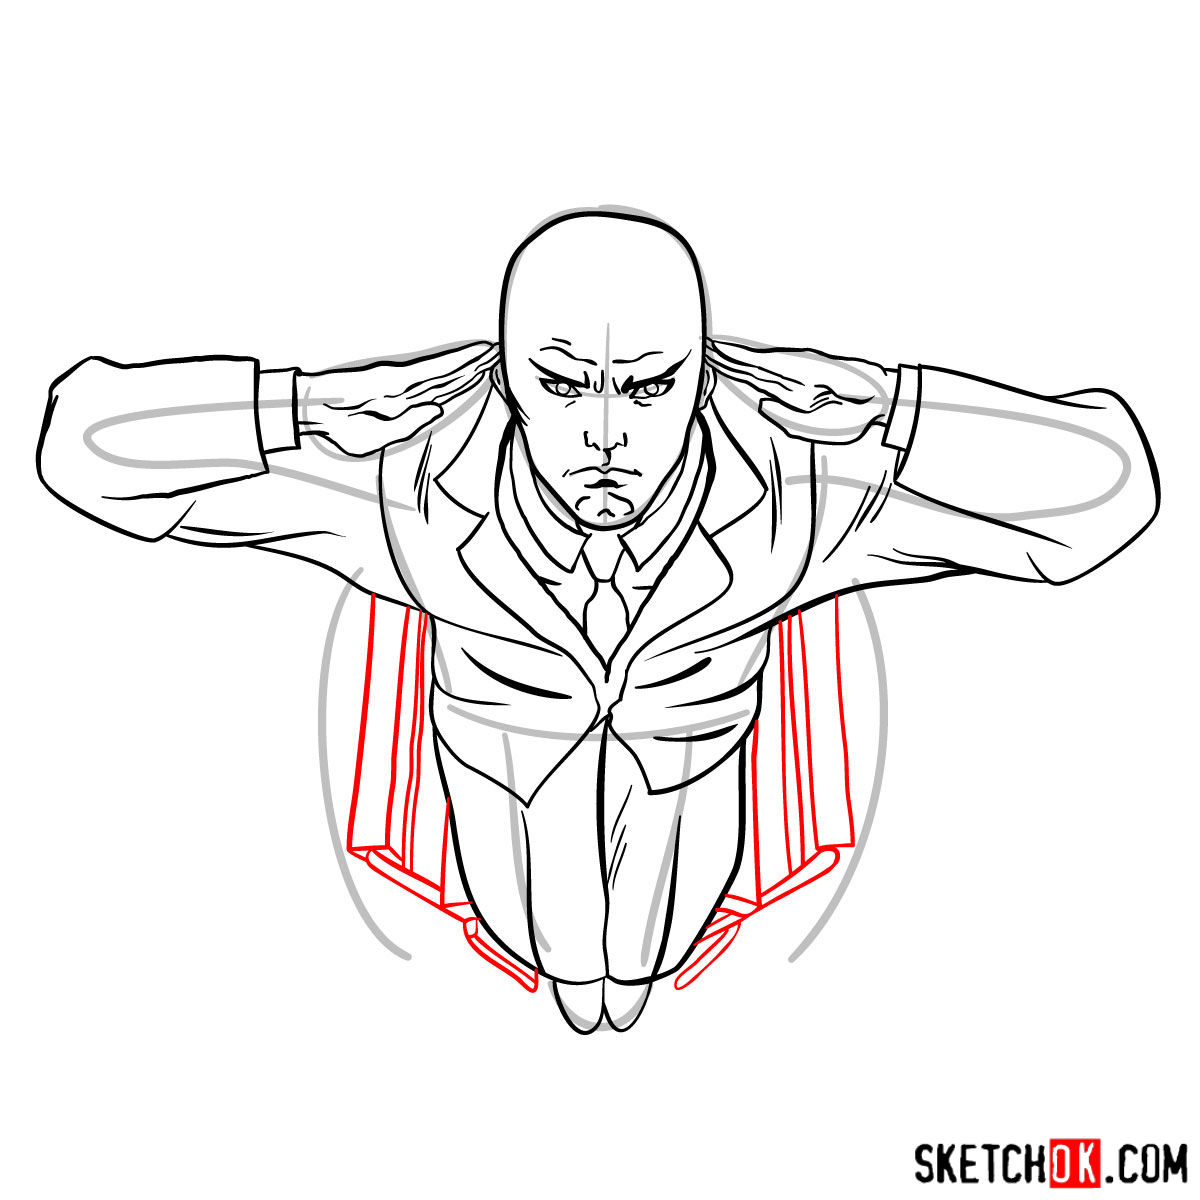 How to draw Professor X in the wheelchair - step 11